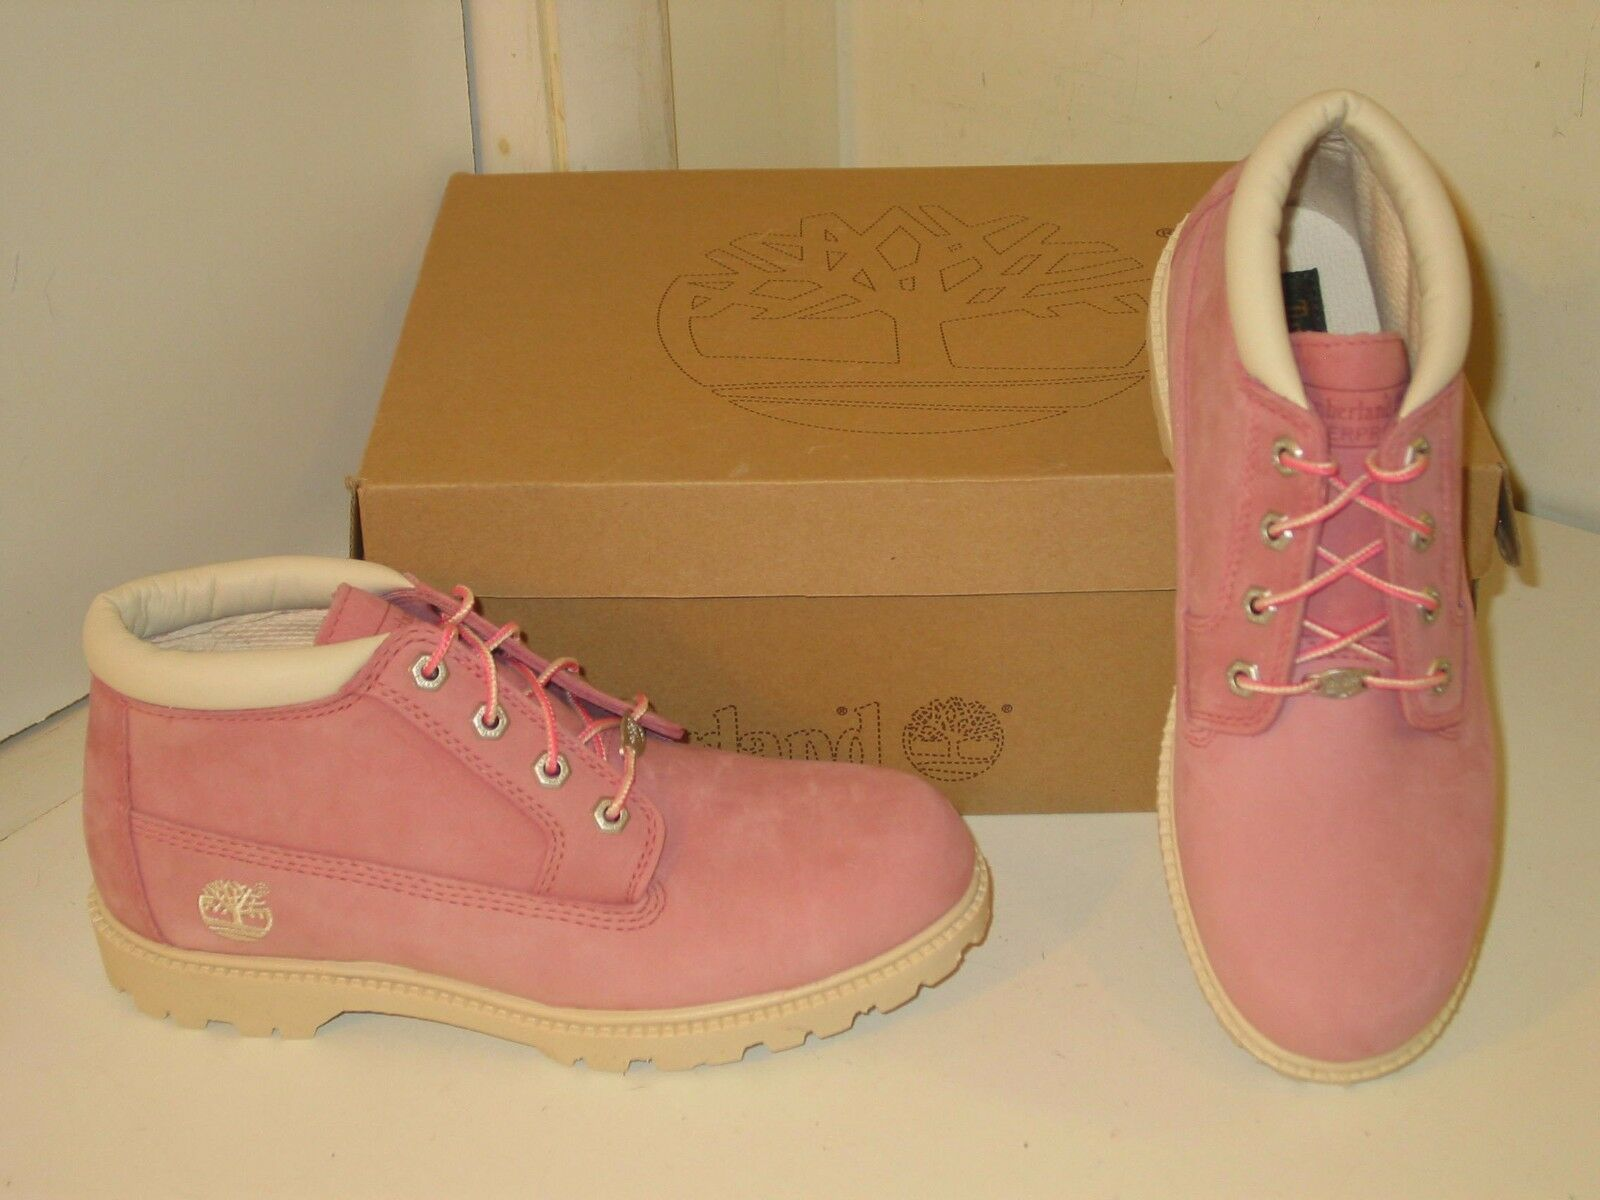 Femmes Chaussures Timberland 11 x3XsdY